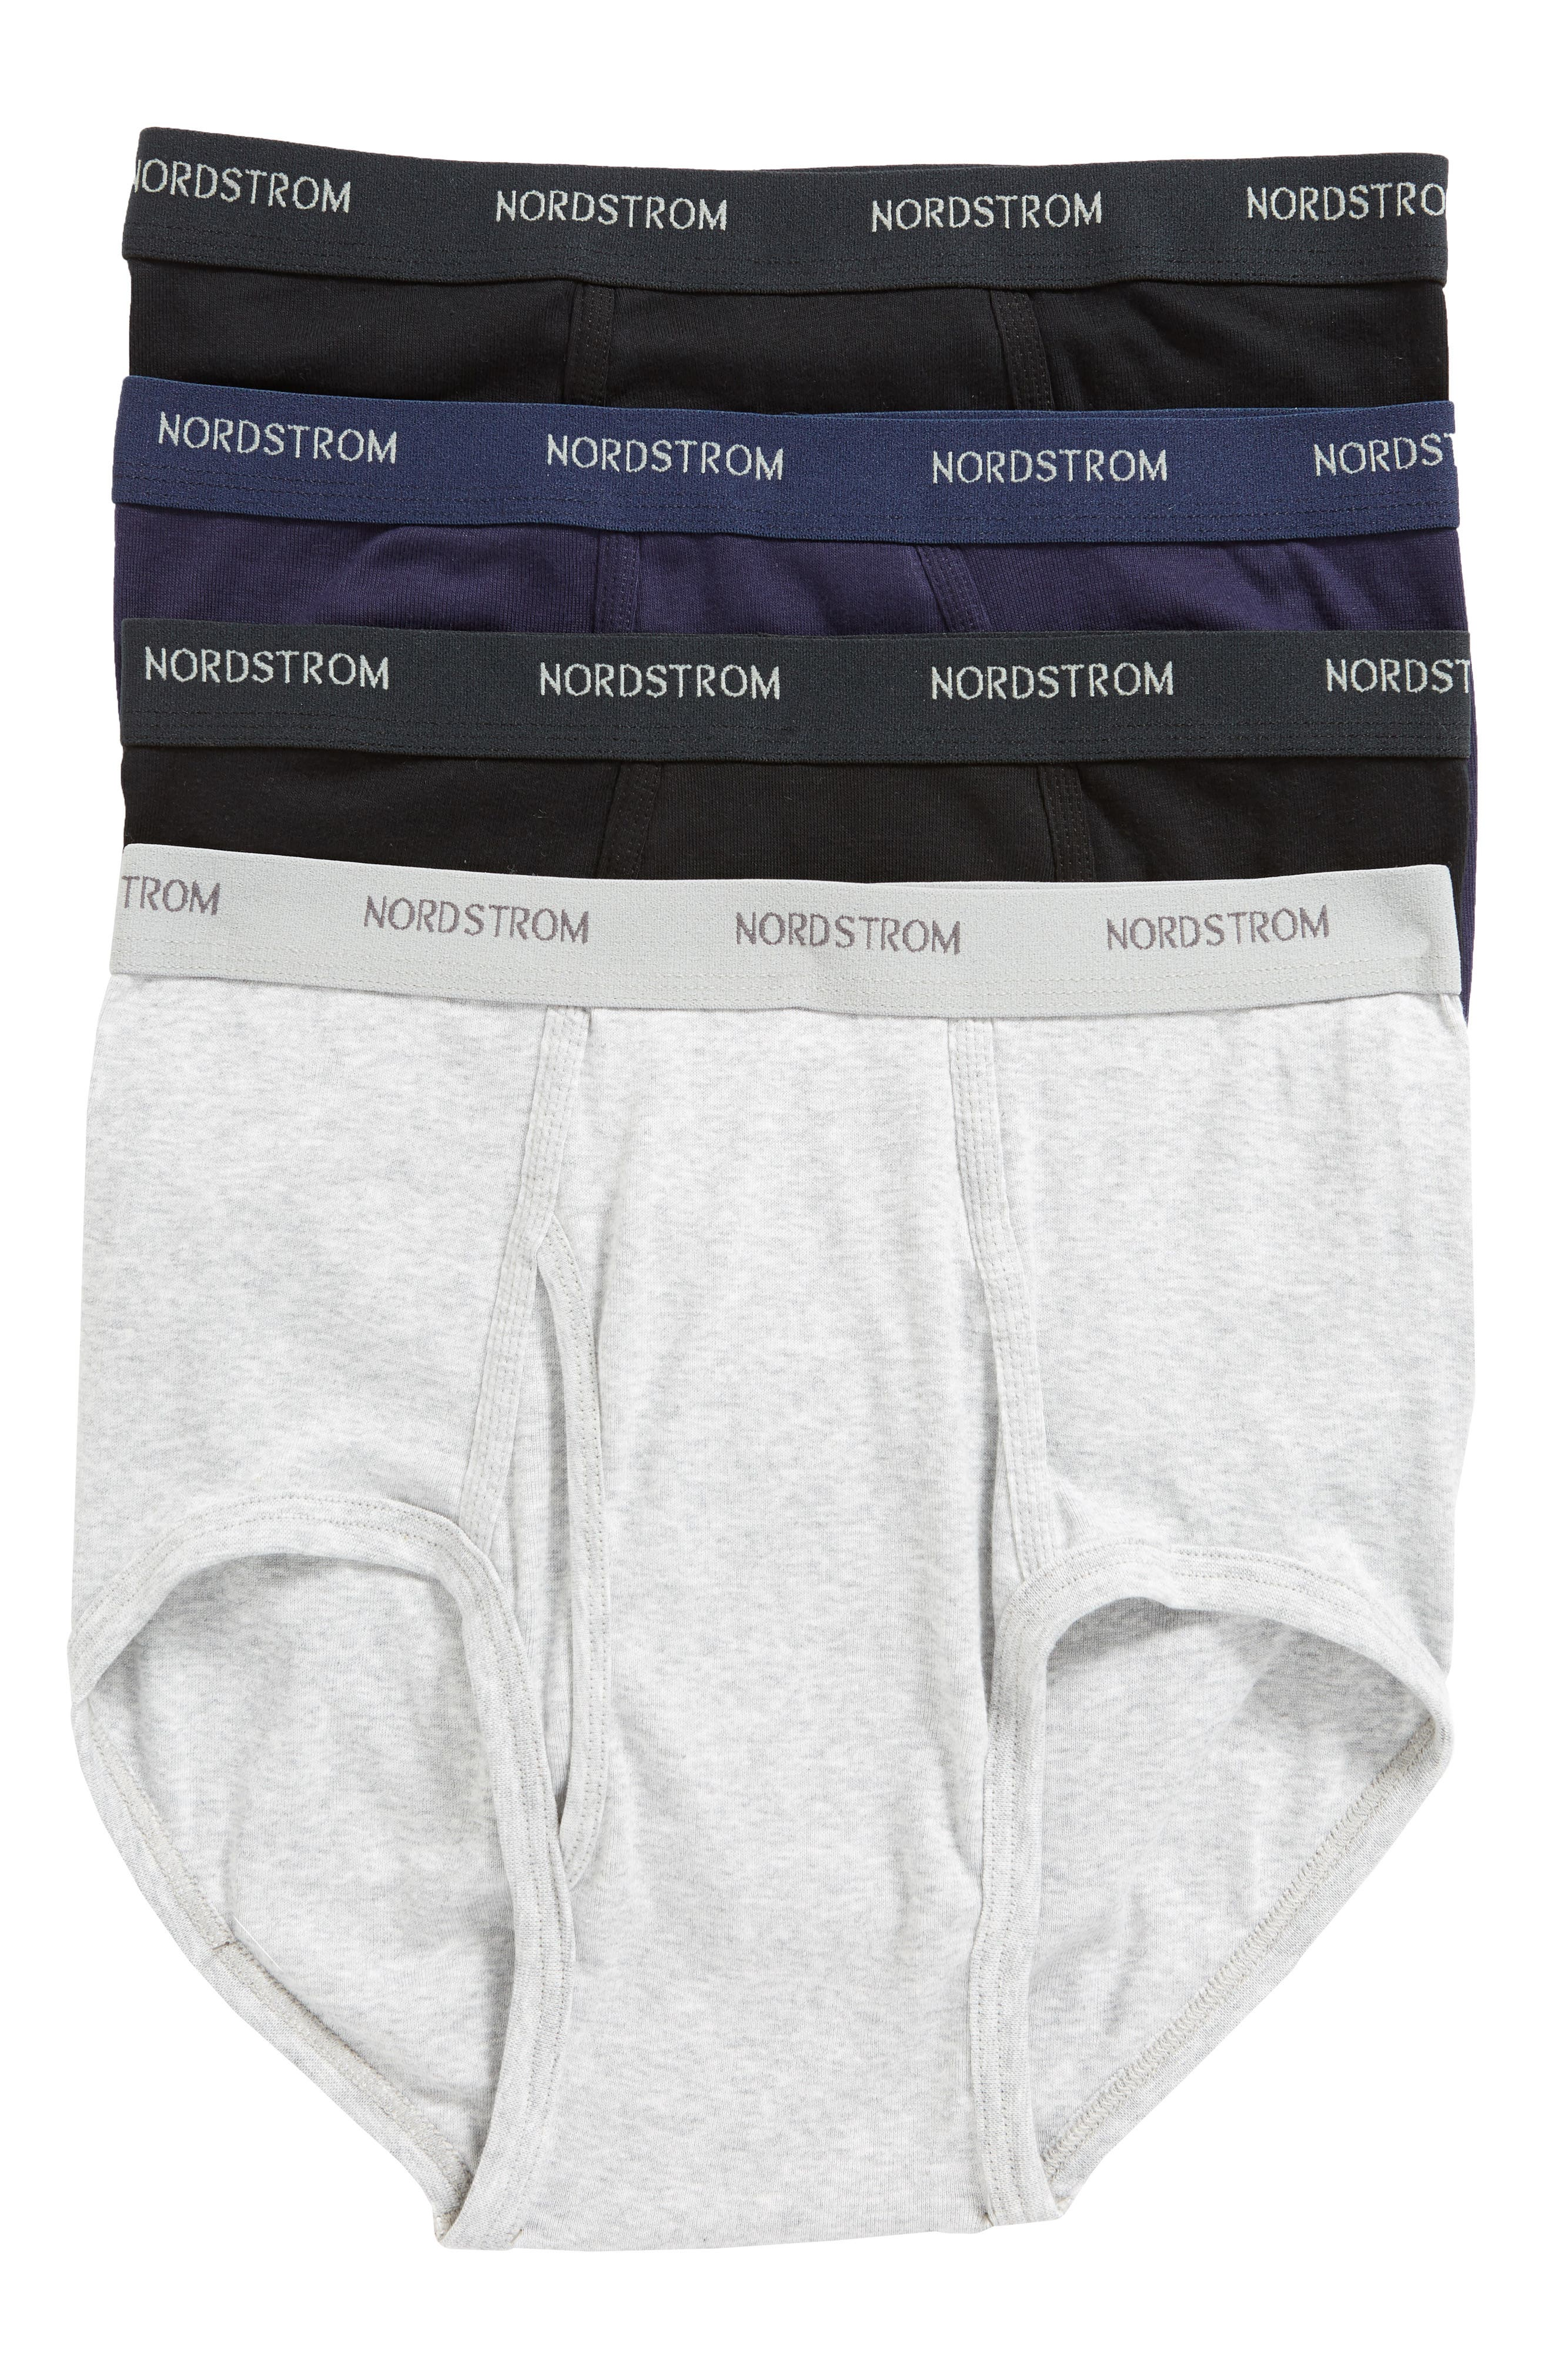 4-Pack Supima<sup>®</sup> Cotton Briefs,                         Main,                         color, BLACK/ NAVY/ GREY